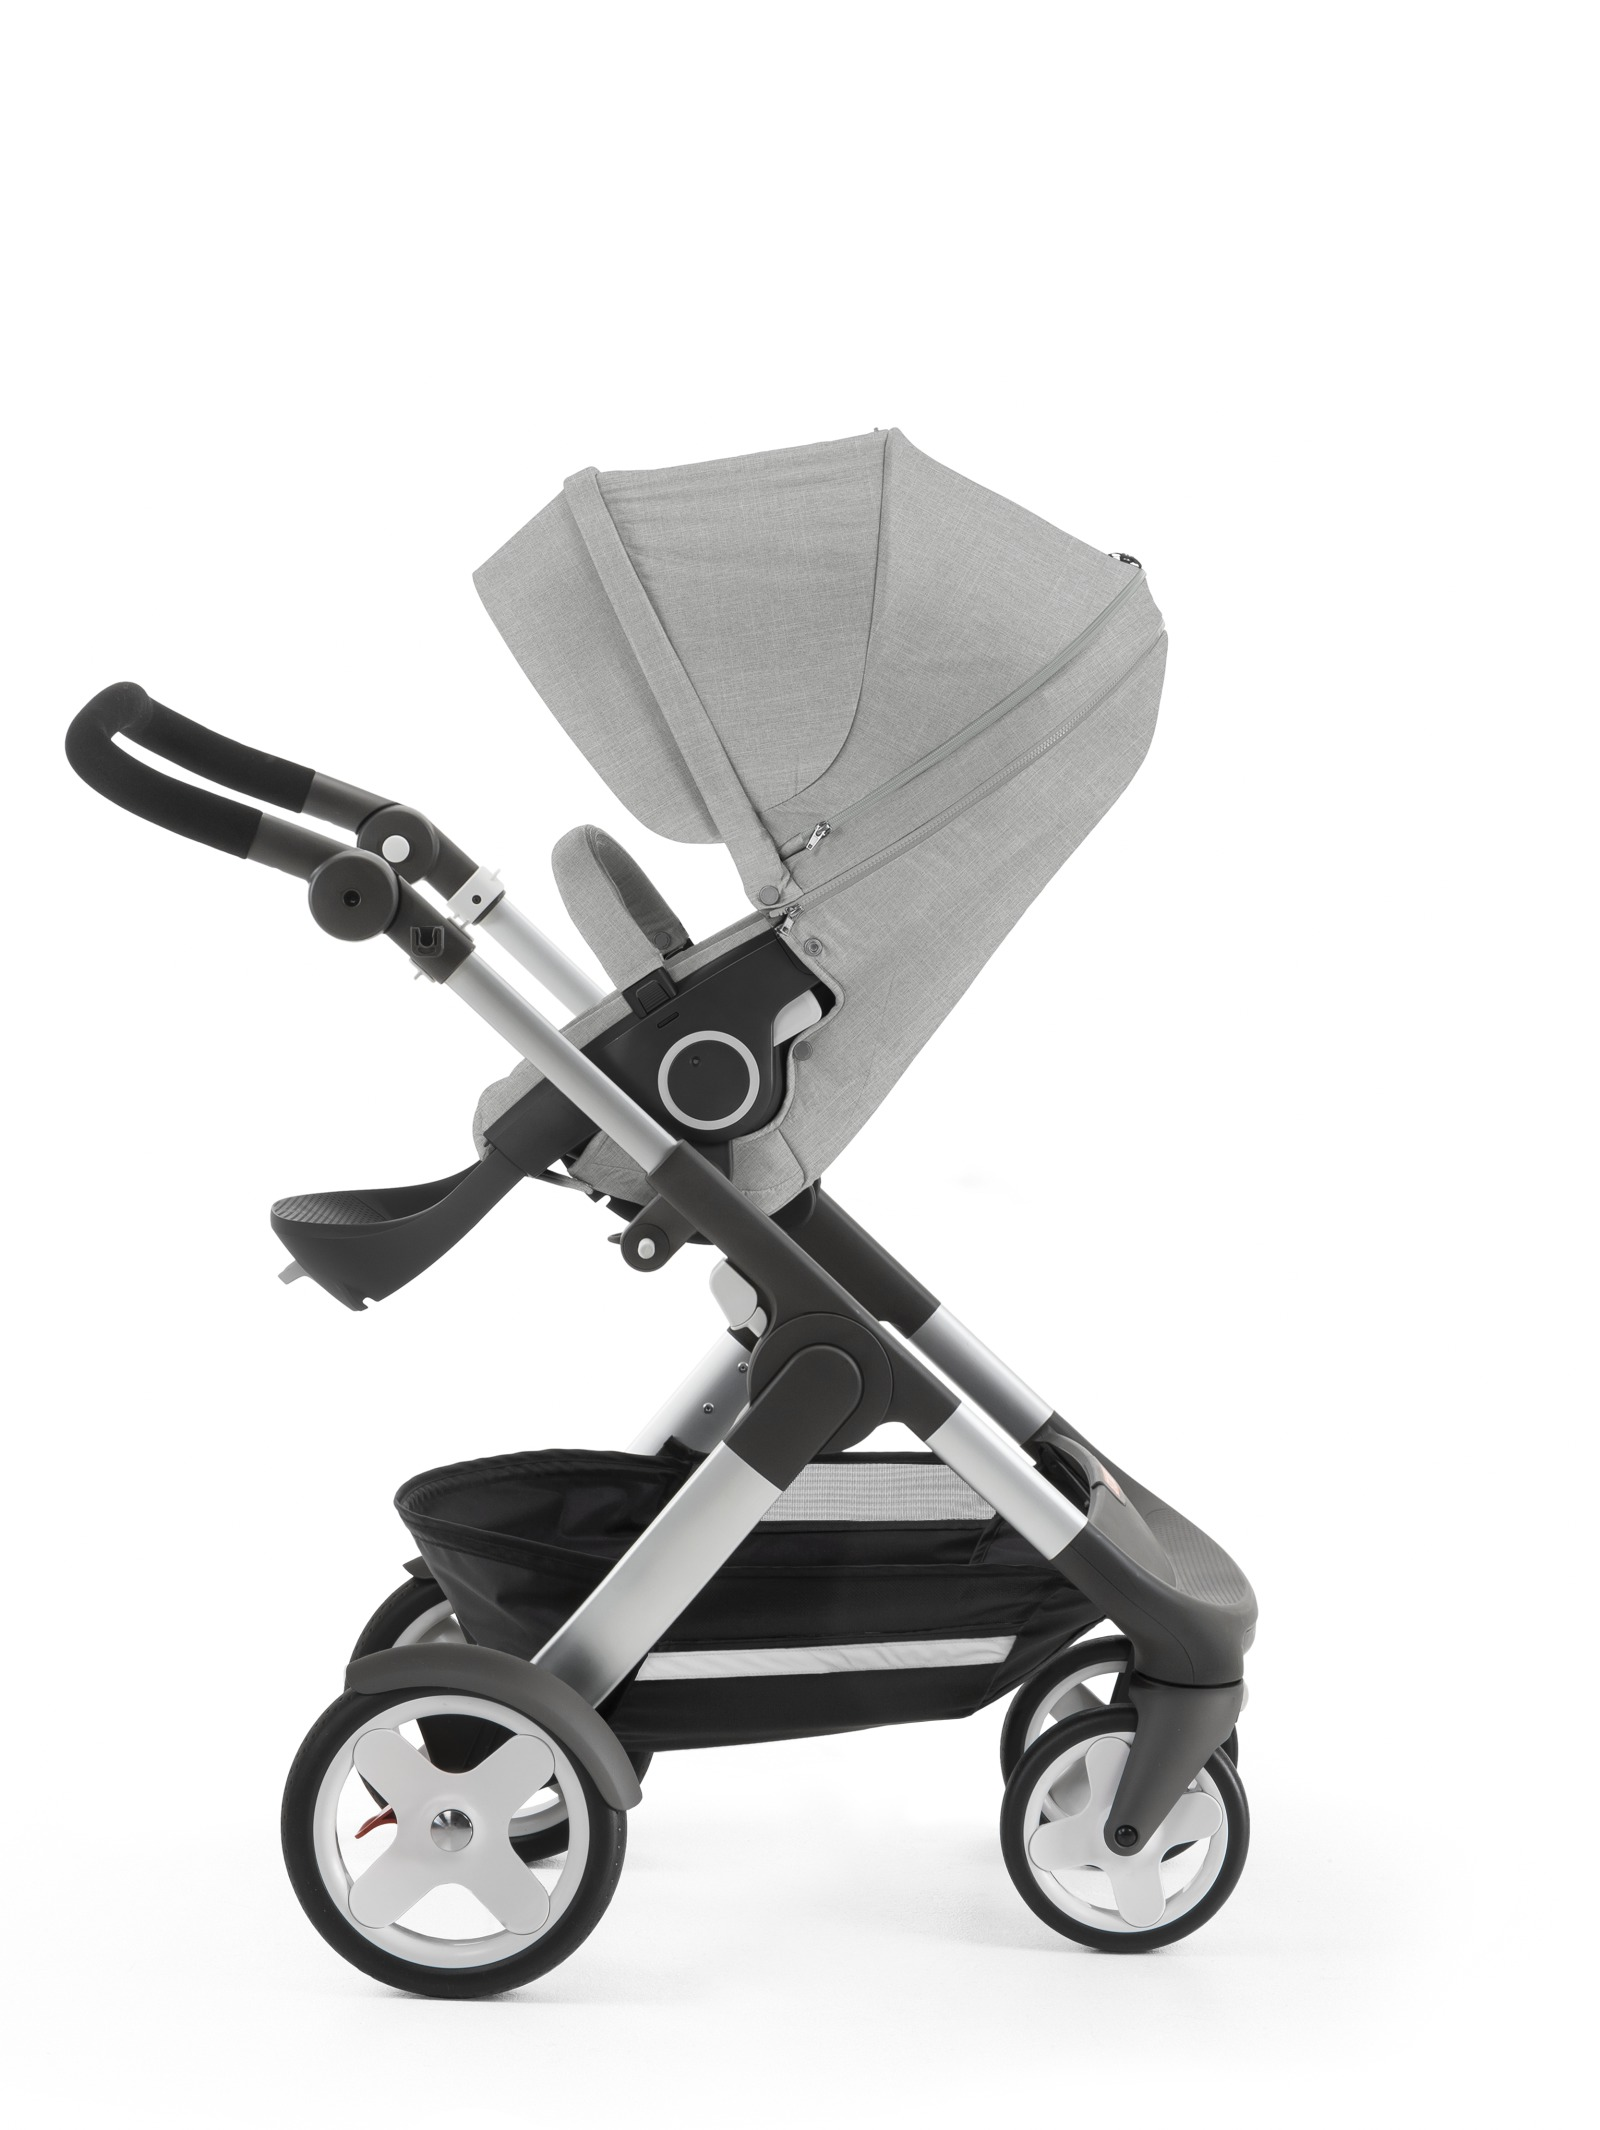 Stokke® Trailz™ with Stokke® Stroller Seat, Grey Melange. Classic Wheels.